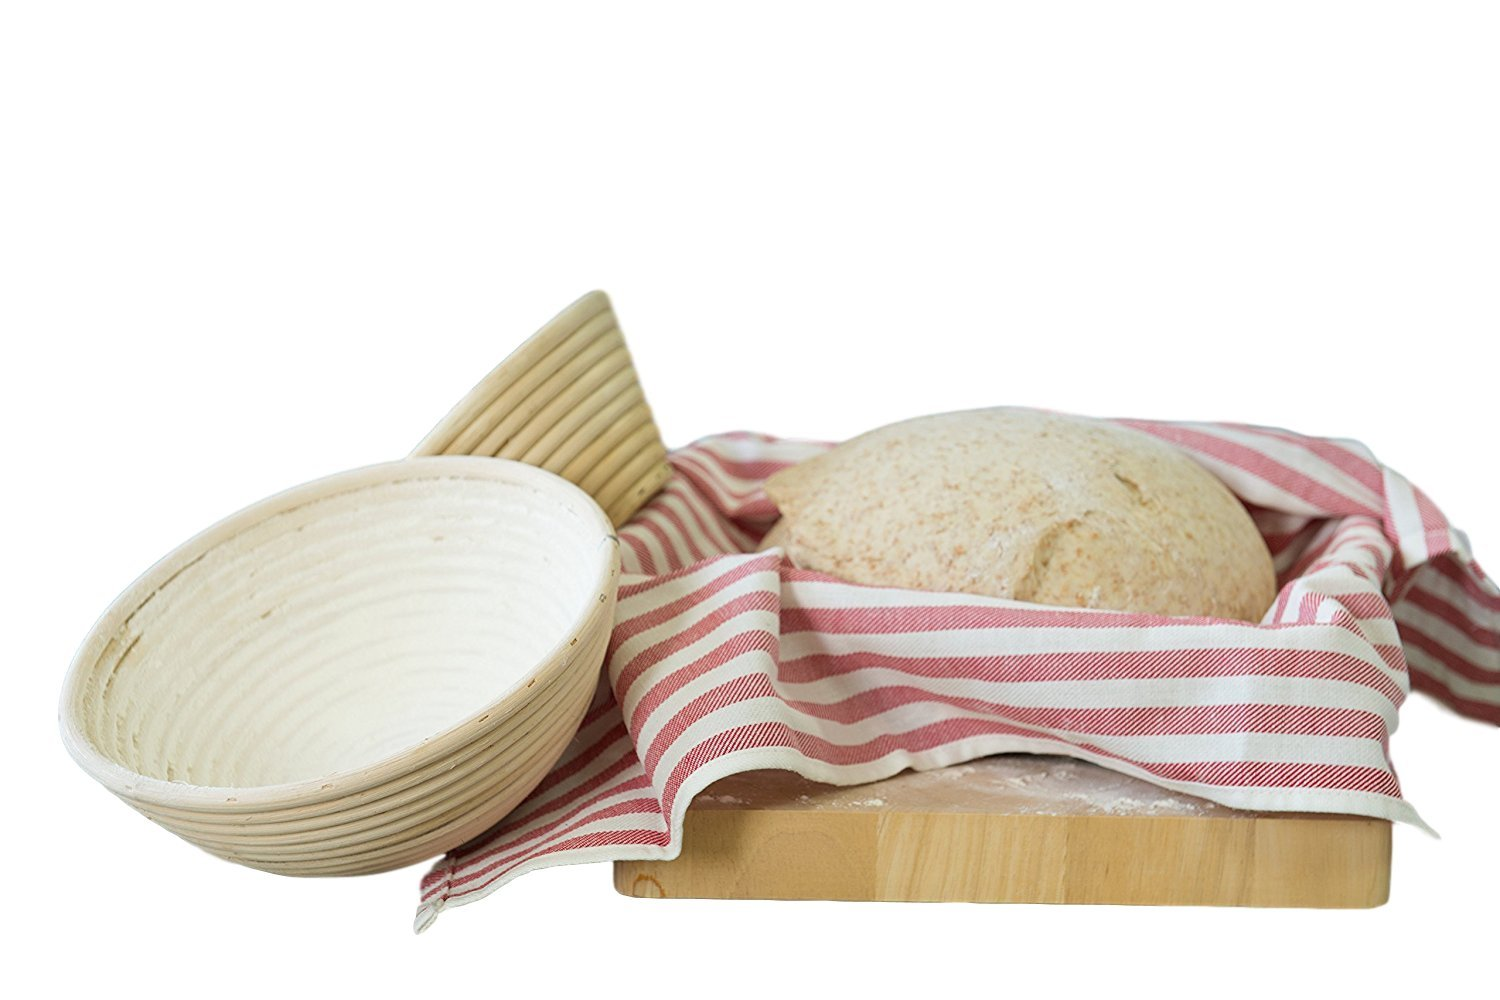 Chef Cicero - Banneton Proofing Basket - Large (9 Inch) & Round Rising Rattan Liner Brotform - Perfect For Artisan Bread Dough - Handmade Wood Bowl